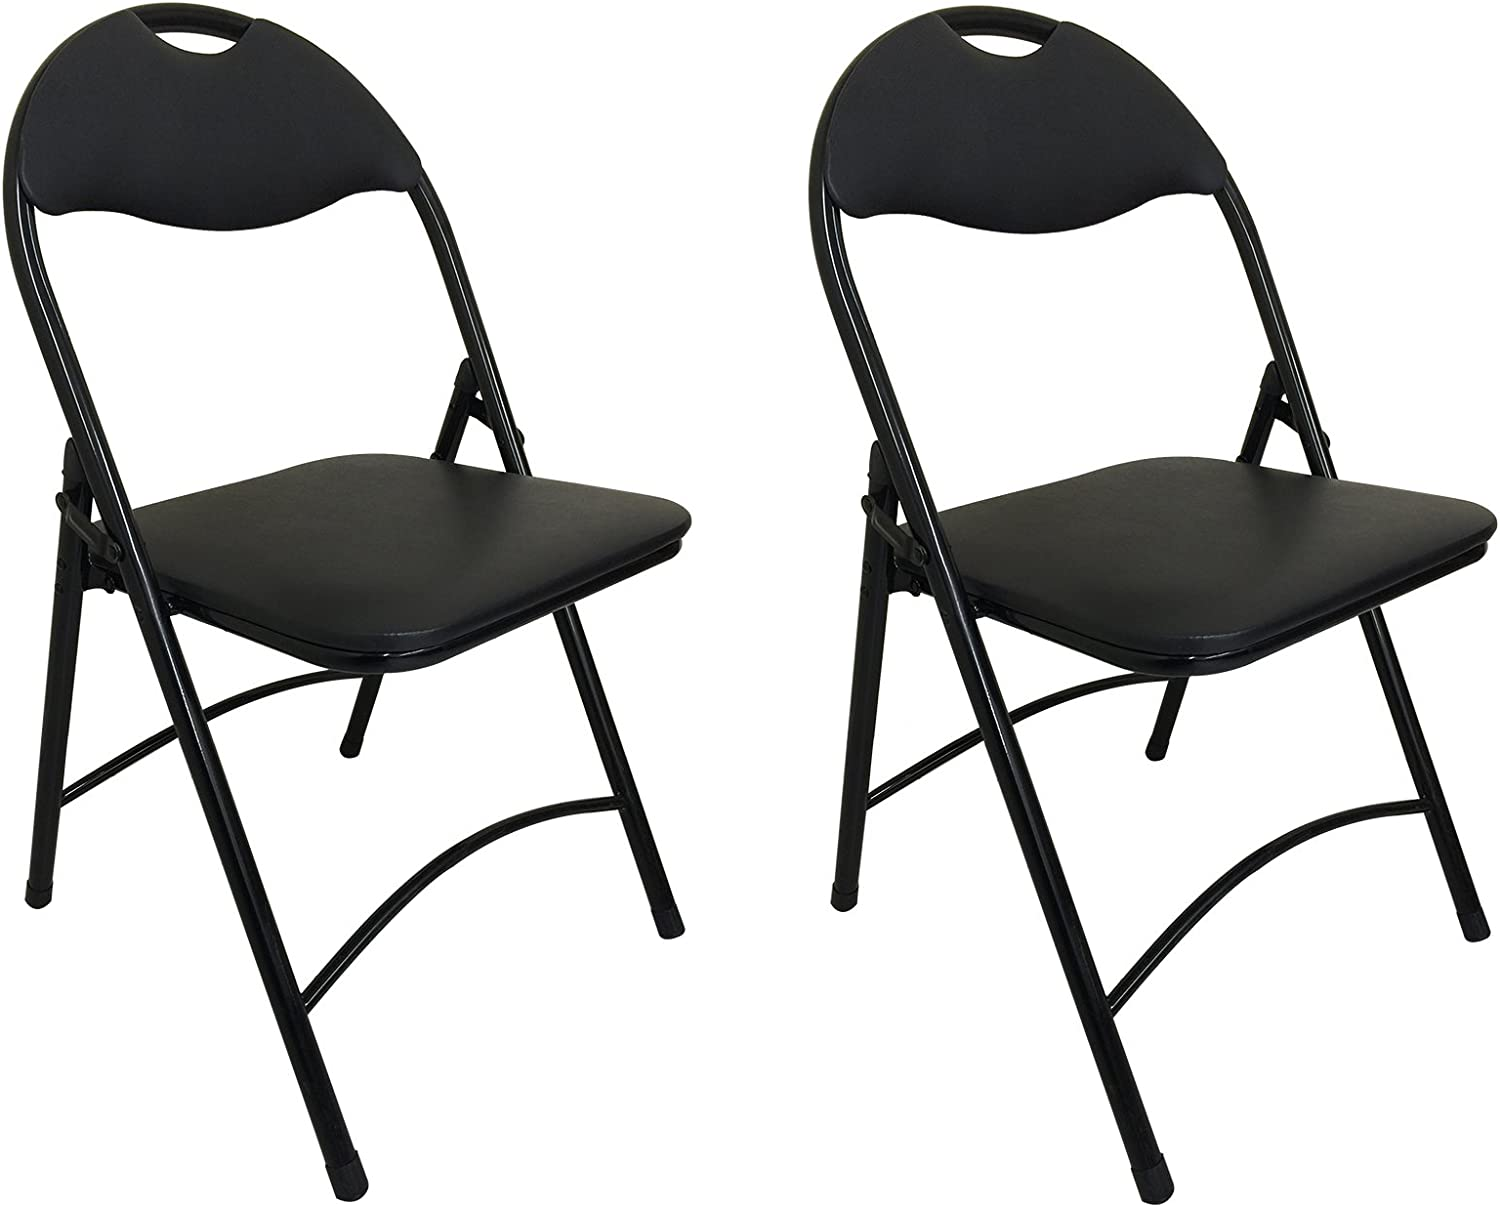 Heavy Duty Sale special price Black Metal Folding Chair with Comfor Seat Padded Topics on TV for